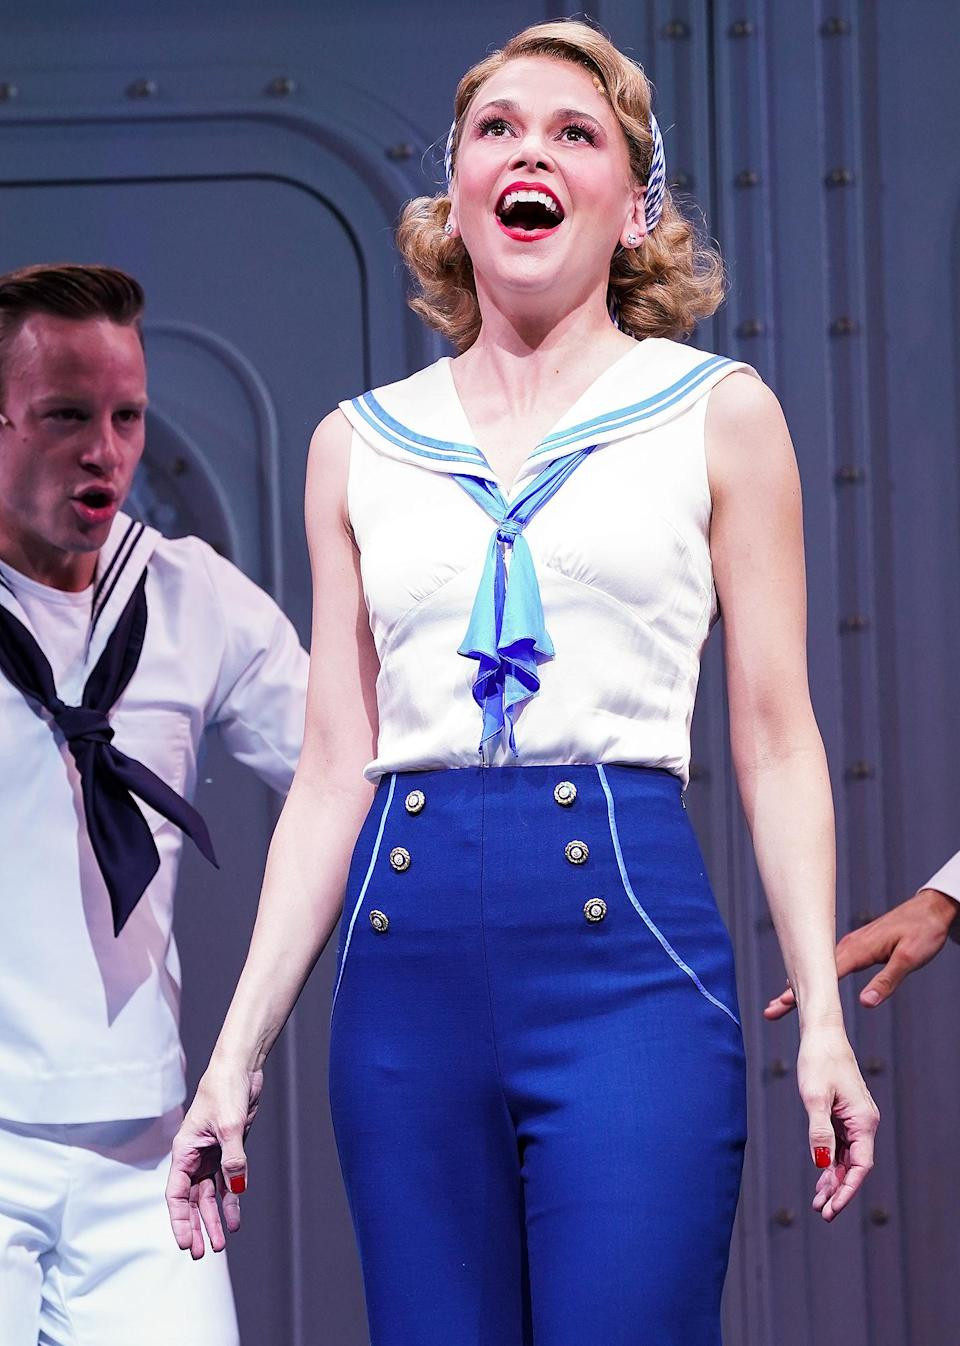 <p>Sutton Foster takes center stage at the photocall for the musical <em>Anything Goes</em> on July 28 before the production opens at the Barbican Theatre in London.</p>